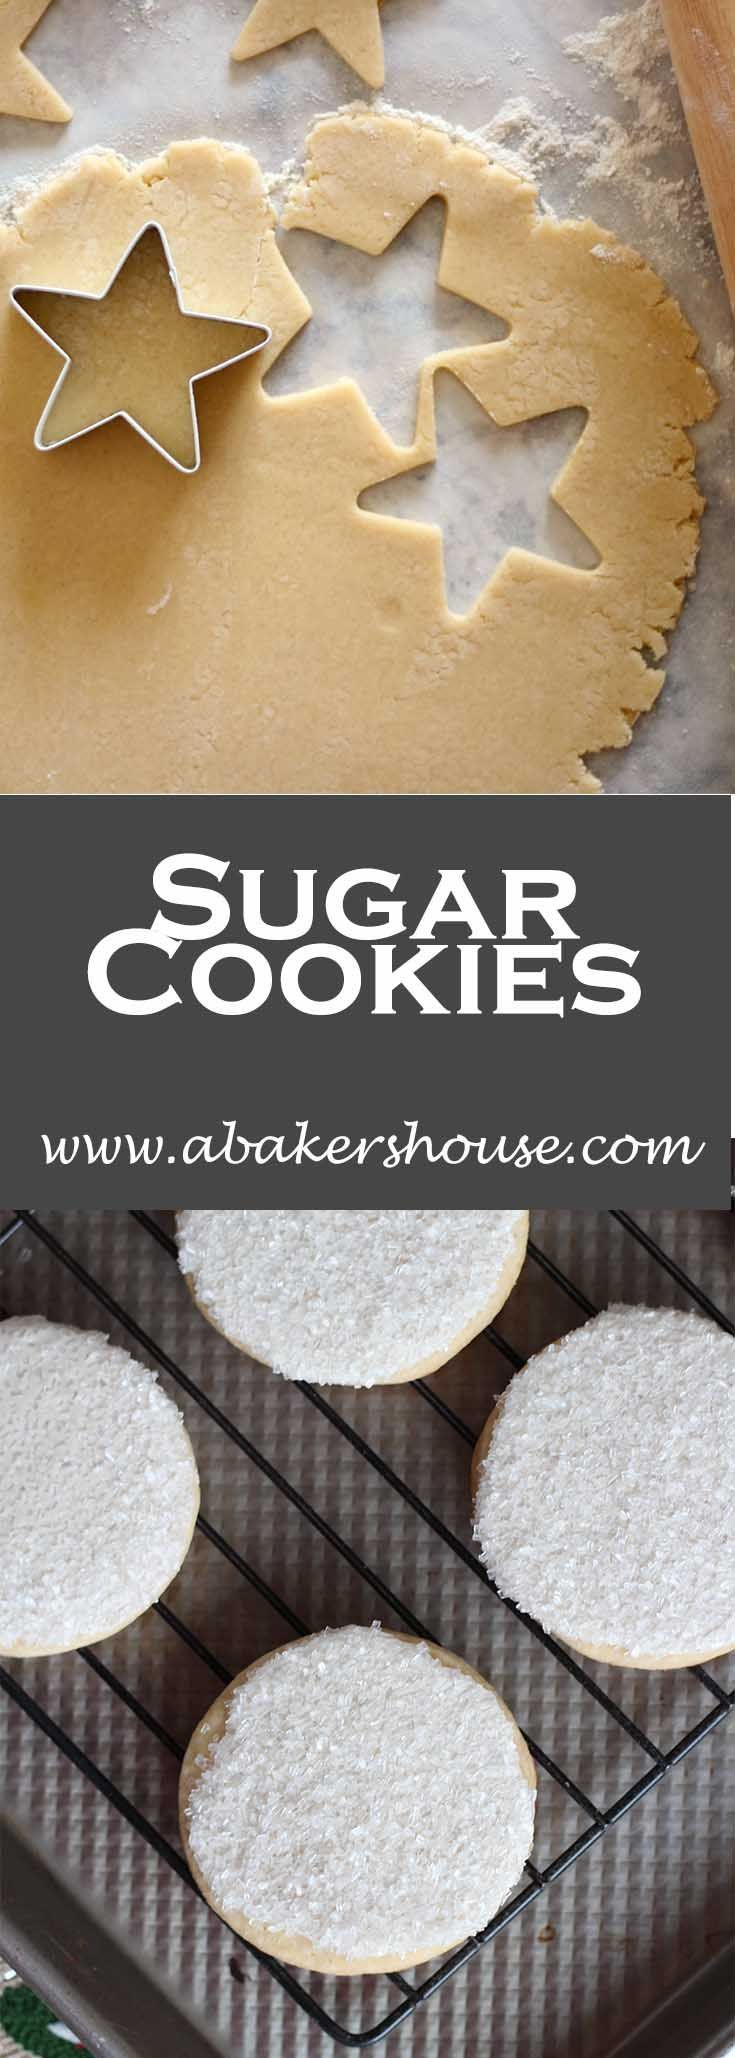 Try icing cookies with royal icing then dipping into sparkling sugar (or sprinkles if you can't find sparkling sugar). This is a quick way to dress up cookies without worrying about a pastry bag.